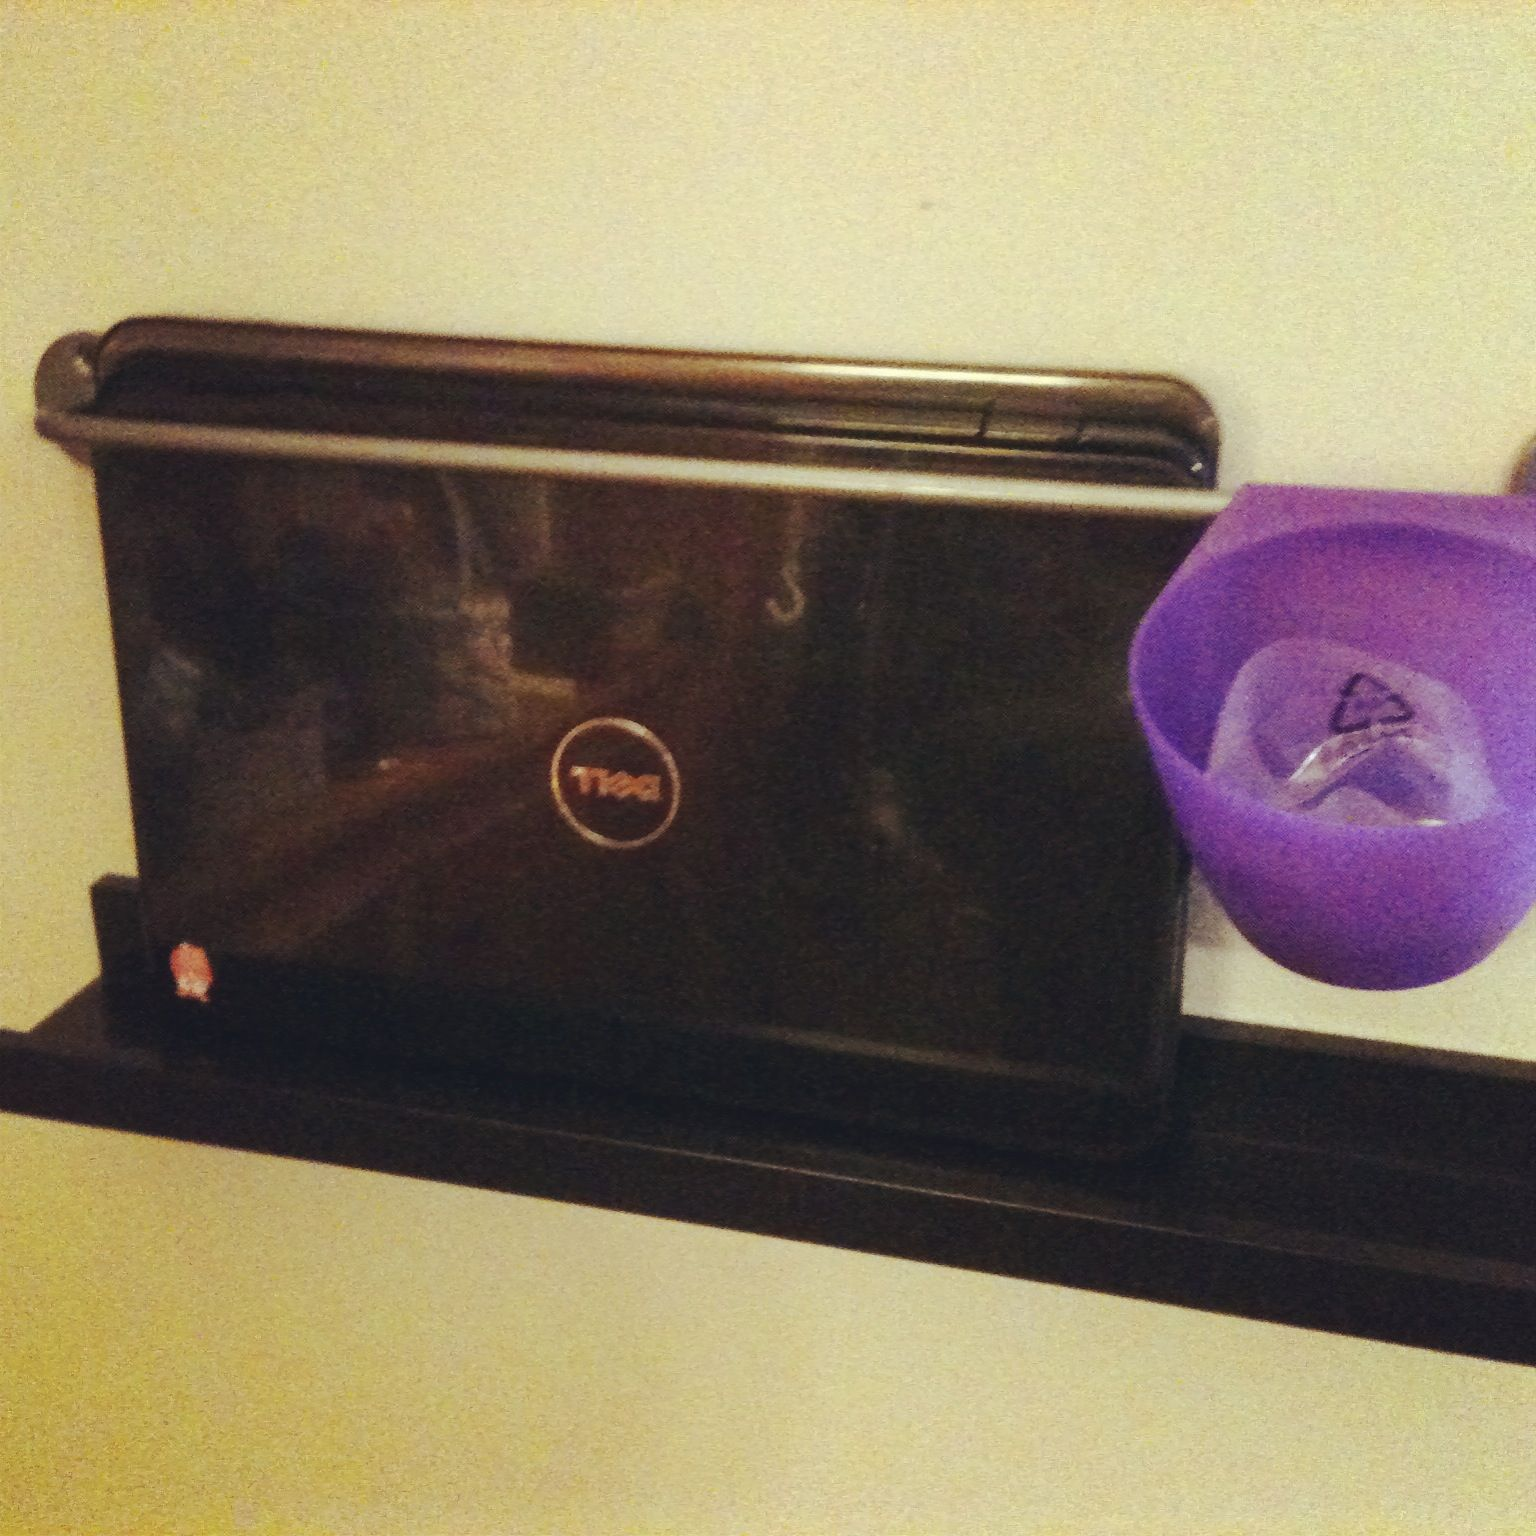 my wall laptop holder i made with ikea ribba picture ledge an